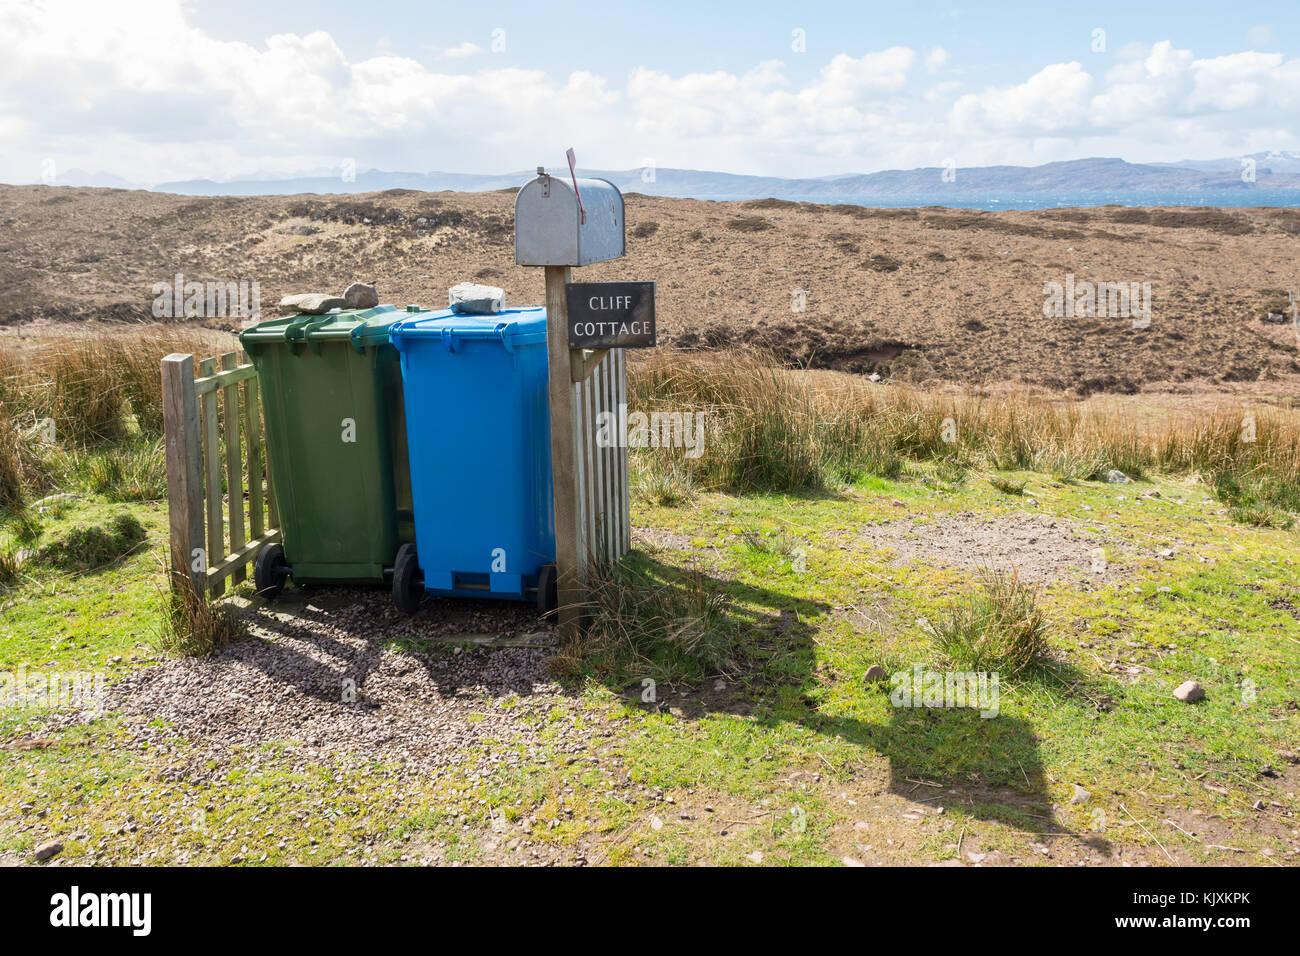 Wheelie bins dans un emplacement distant scottish Photo Stock